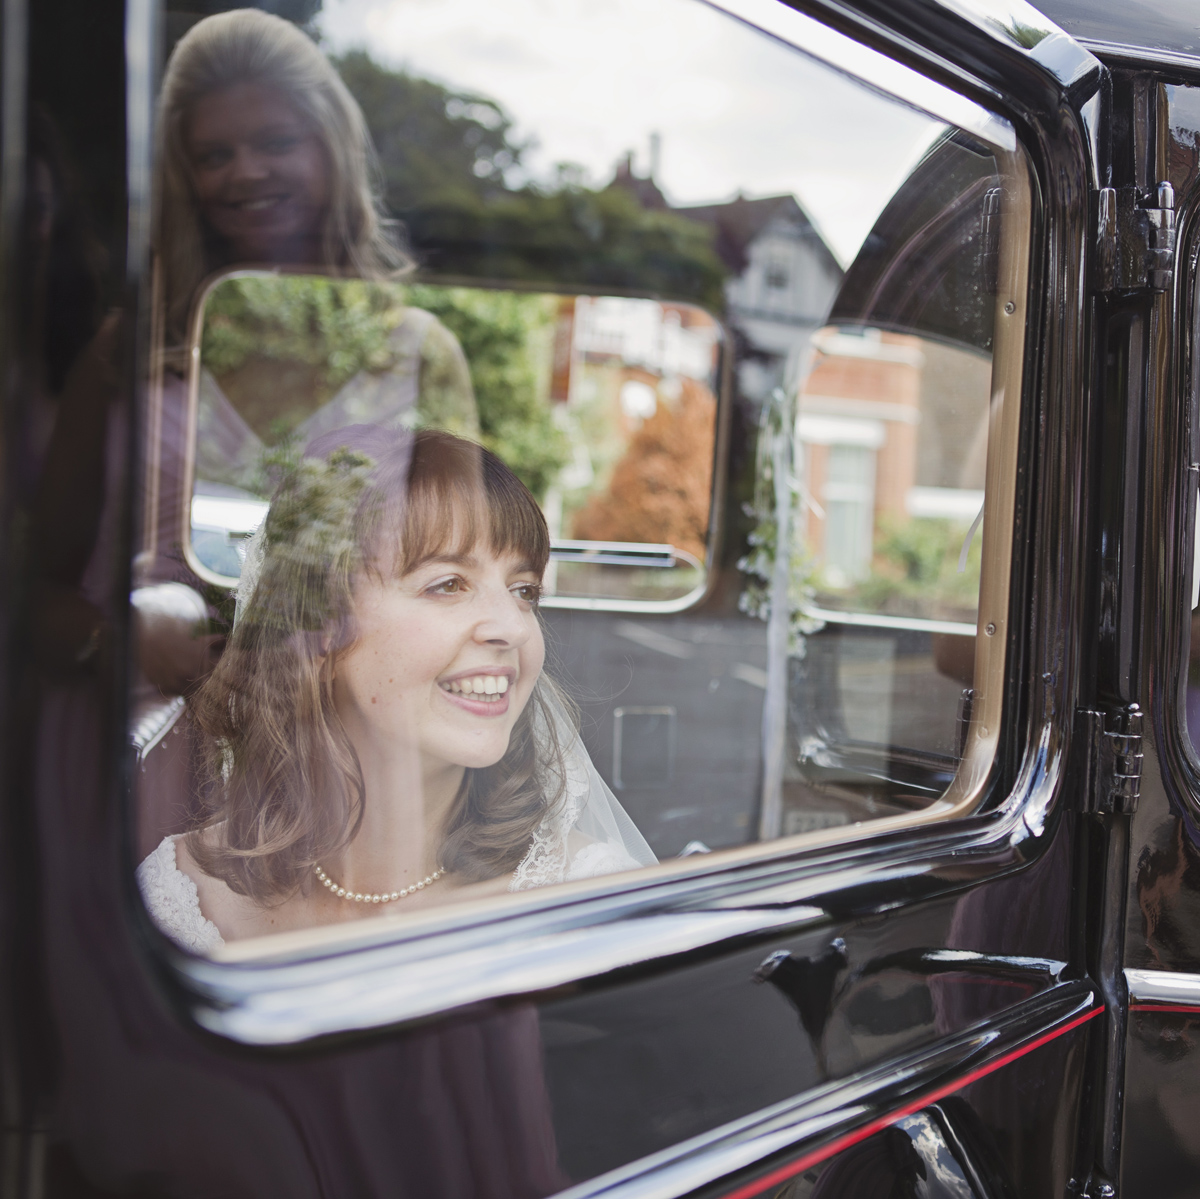 A smiling Bride looking out of the window of a black taxi